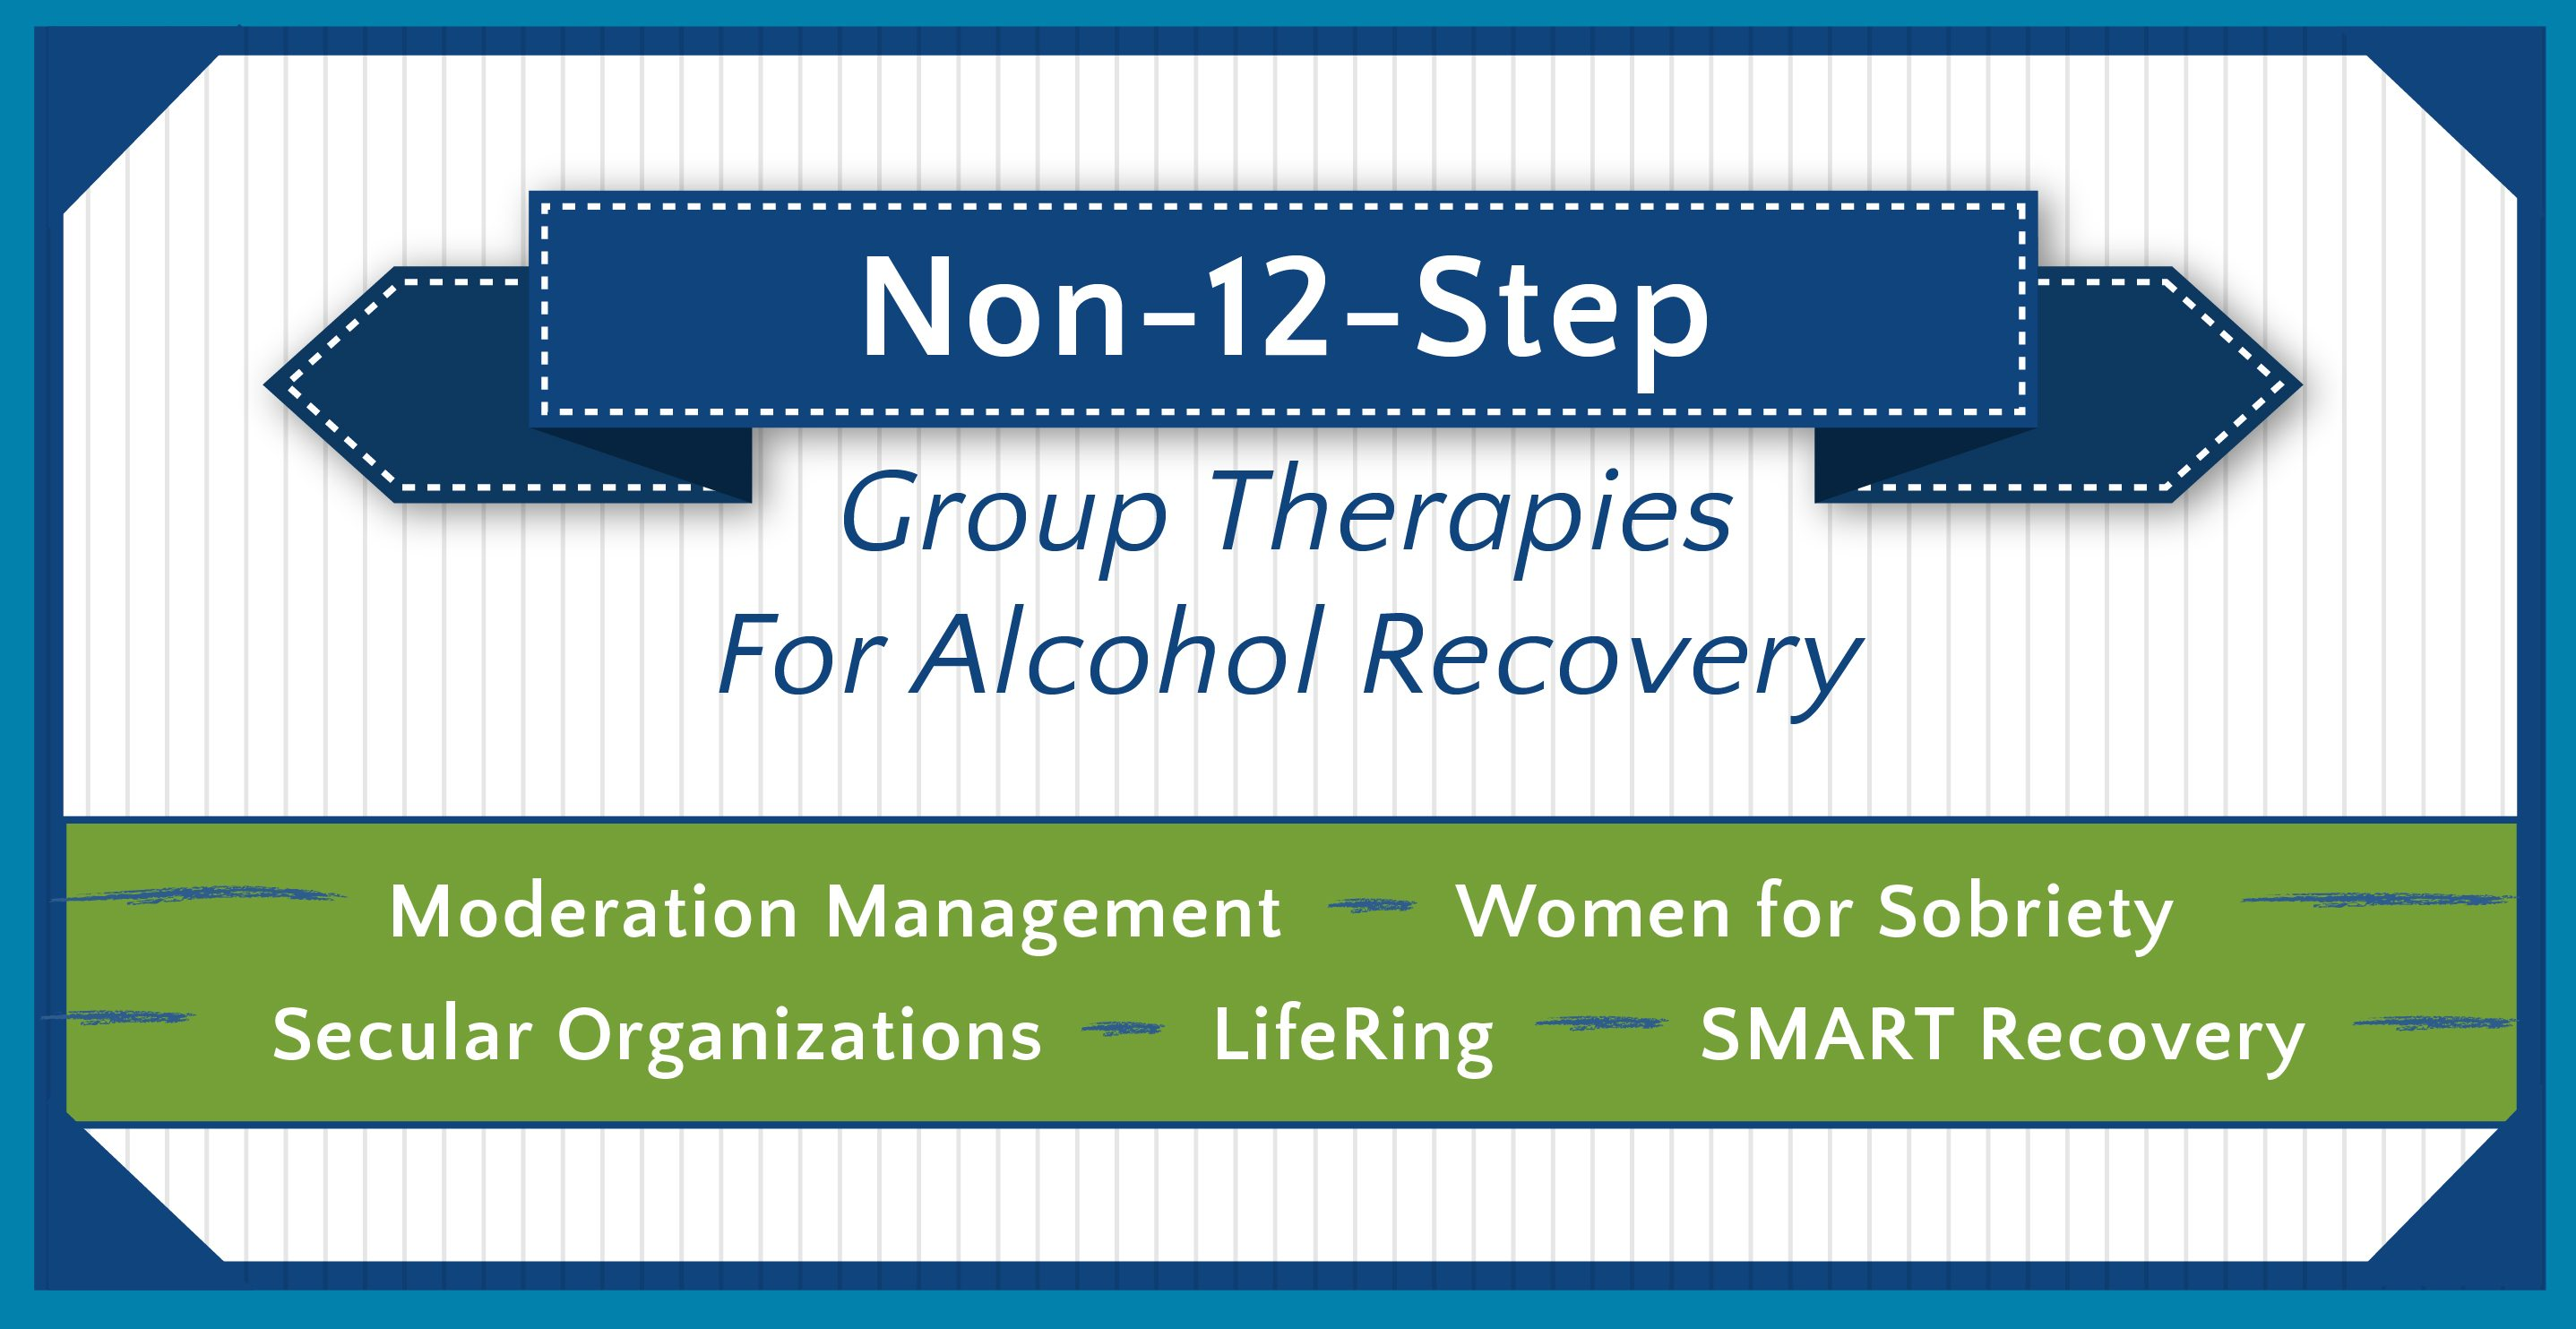 Non 12 Step Group Therapies for Alcohol Recovery